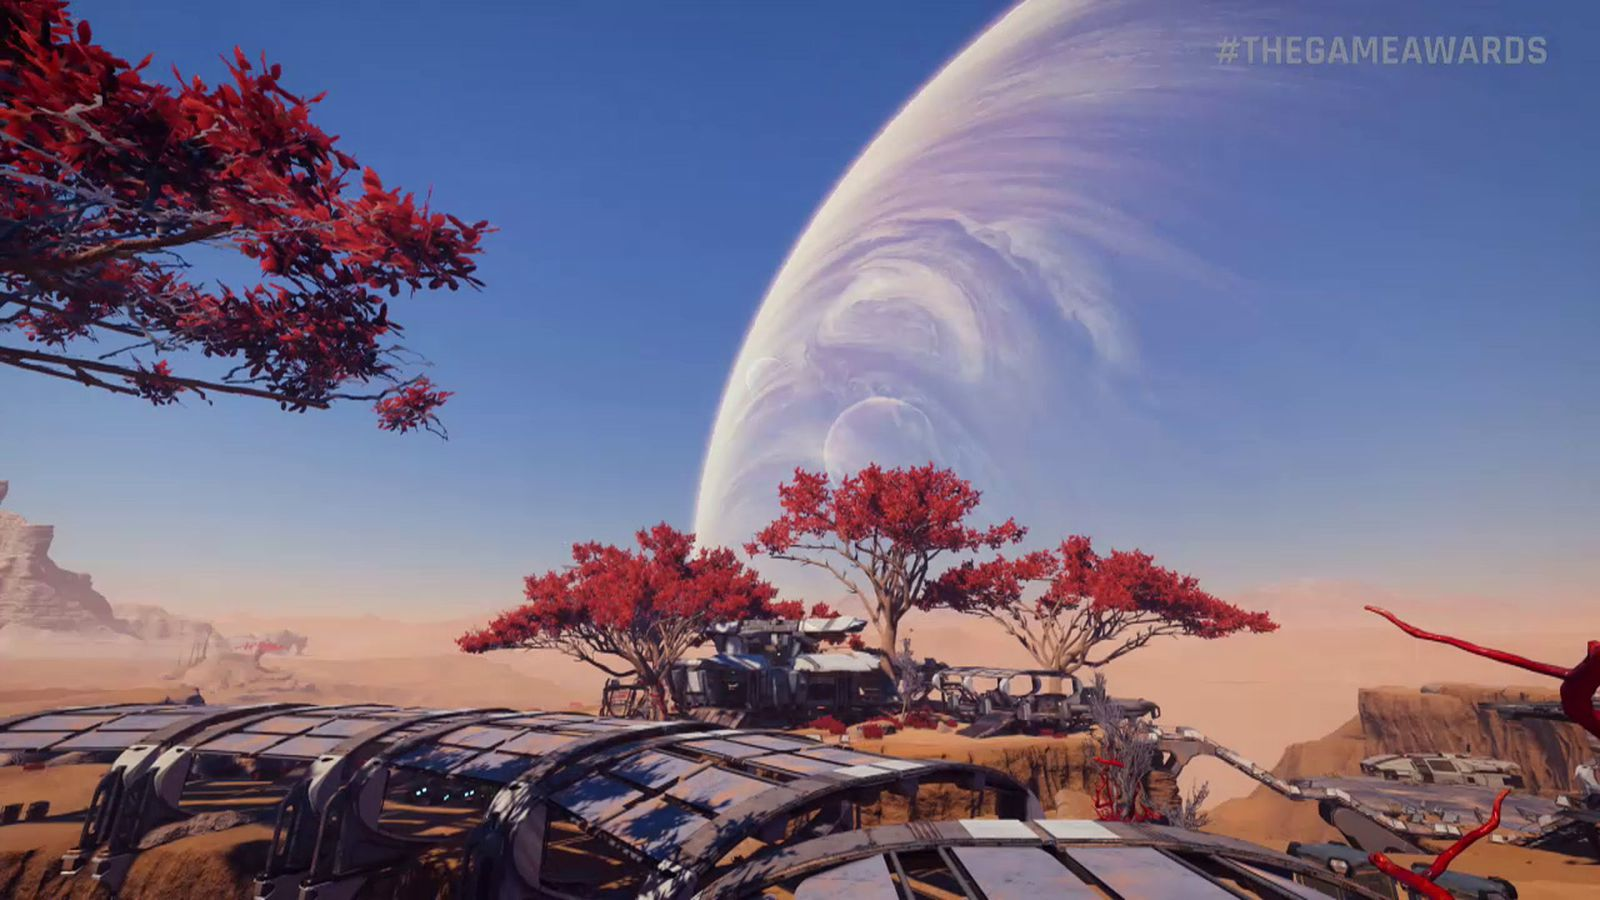 Pubg Best Wallpapers Mass Effect Andromeda S First Gameplay Trailer Highlights